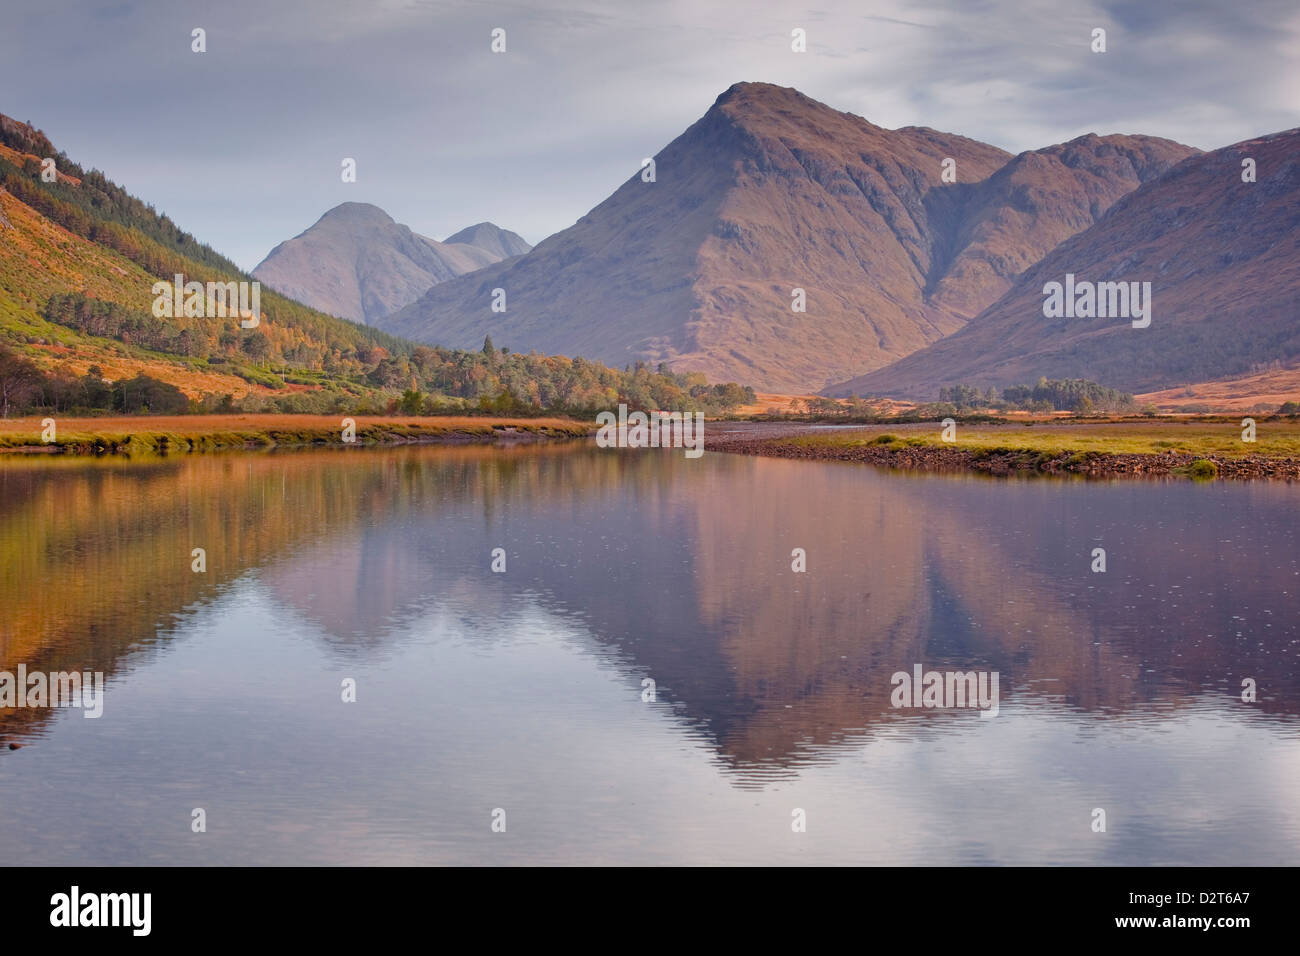 The waters of Loch Etive reflecting the surrounding mountains, Argyll and Bute, Scotland, United Kingdom, Europe - Stock Image